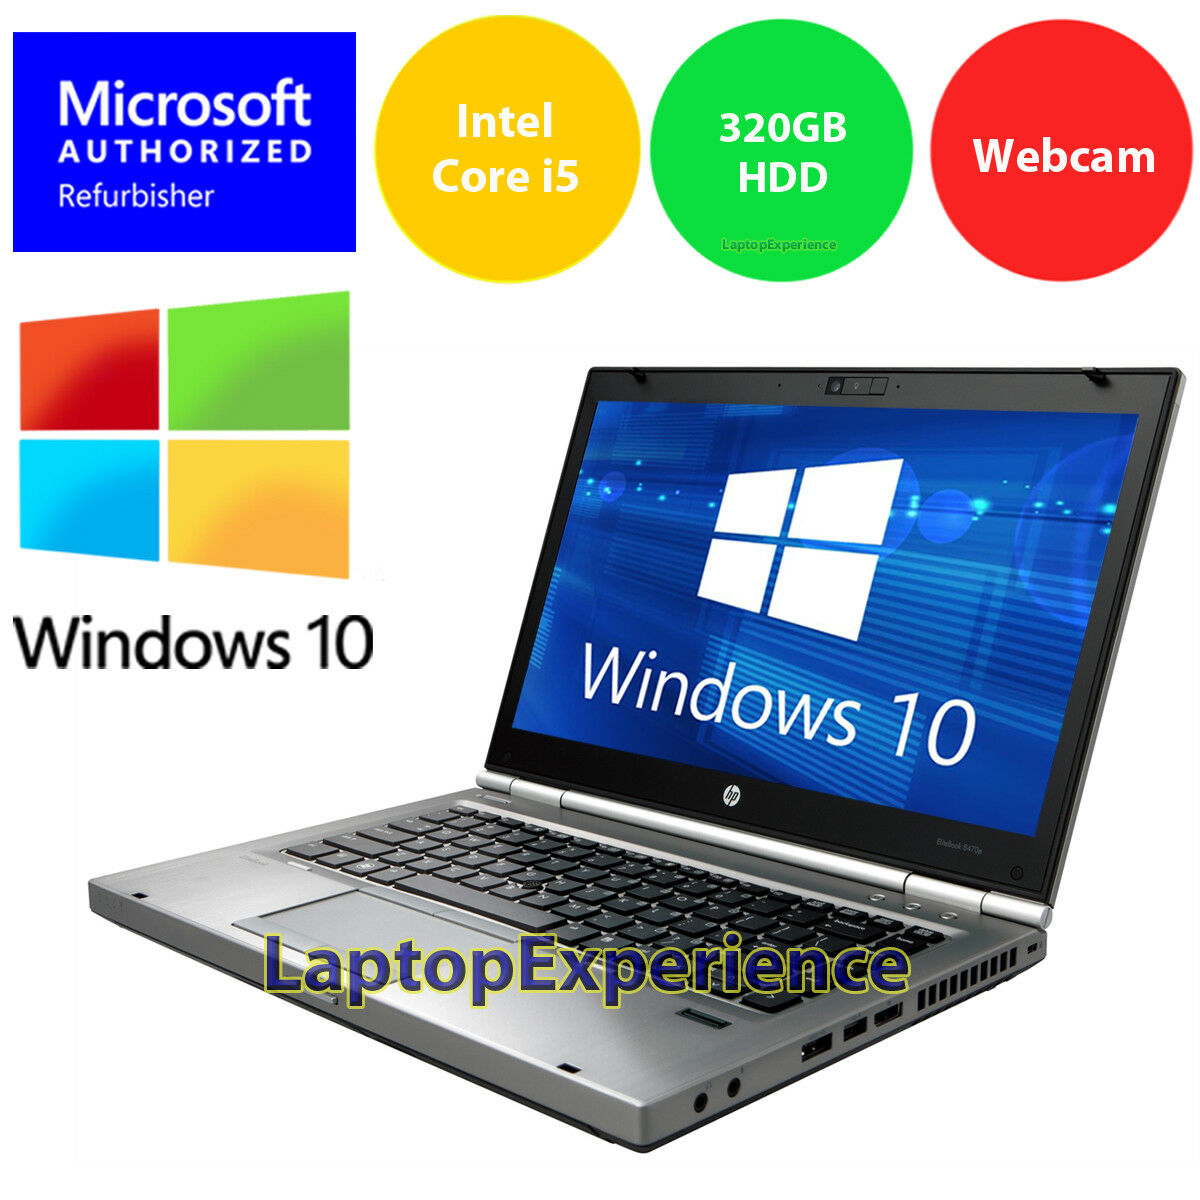 Details about HP LAPTOP ELITEBOOK 8470p i5 2 6GHz 4GB LED DVD WEBCAM  WINDOWS 10 WIN WiFi PC HD